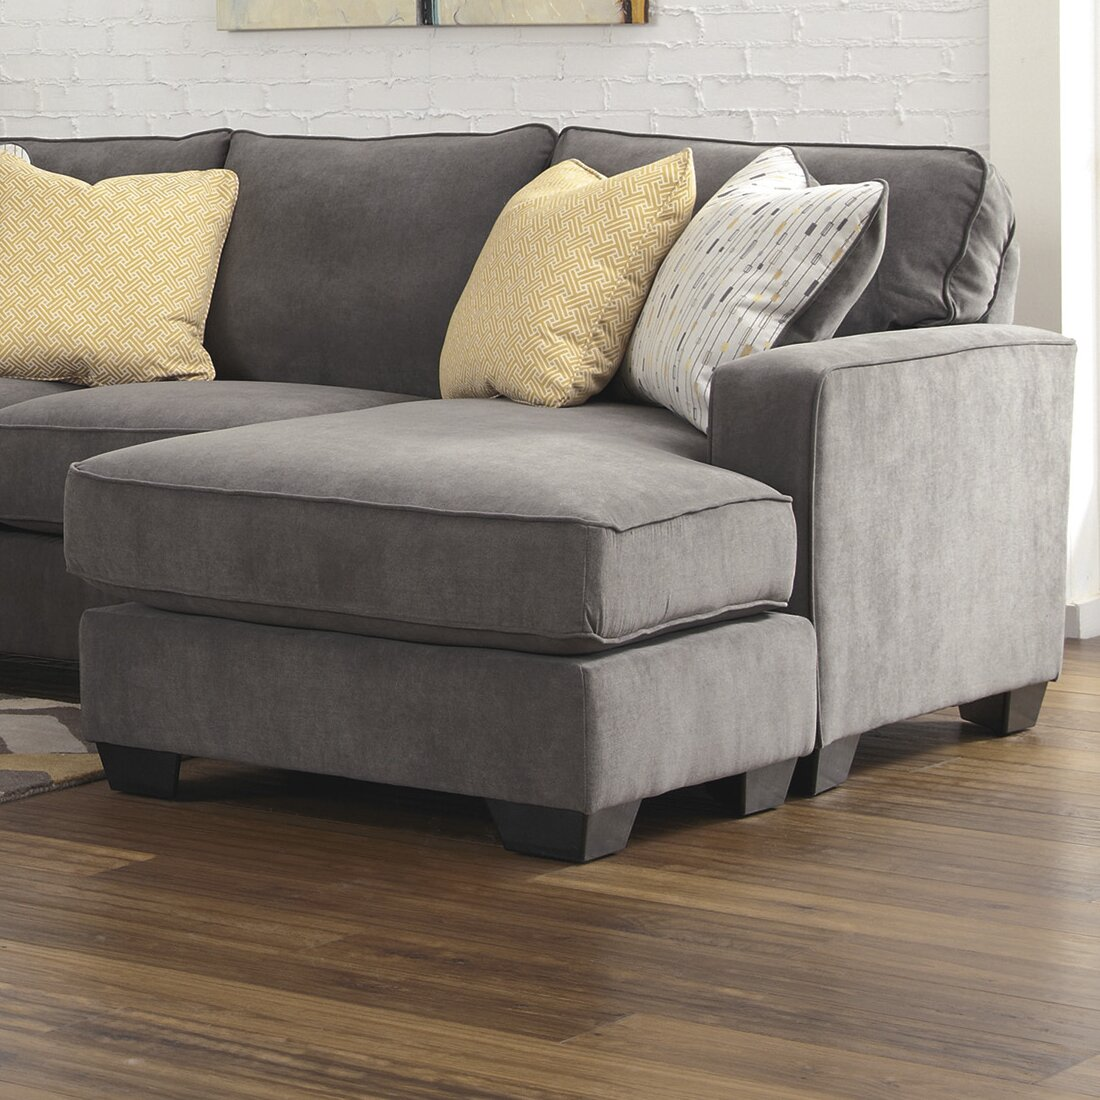 Mercer41 Kessel Reversible Chaise Sectional Amp Reviews